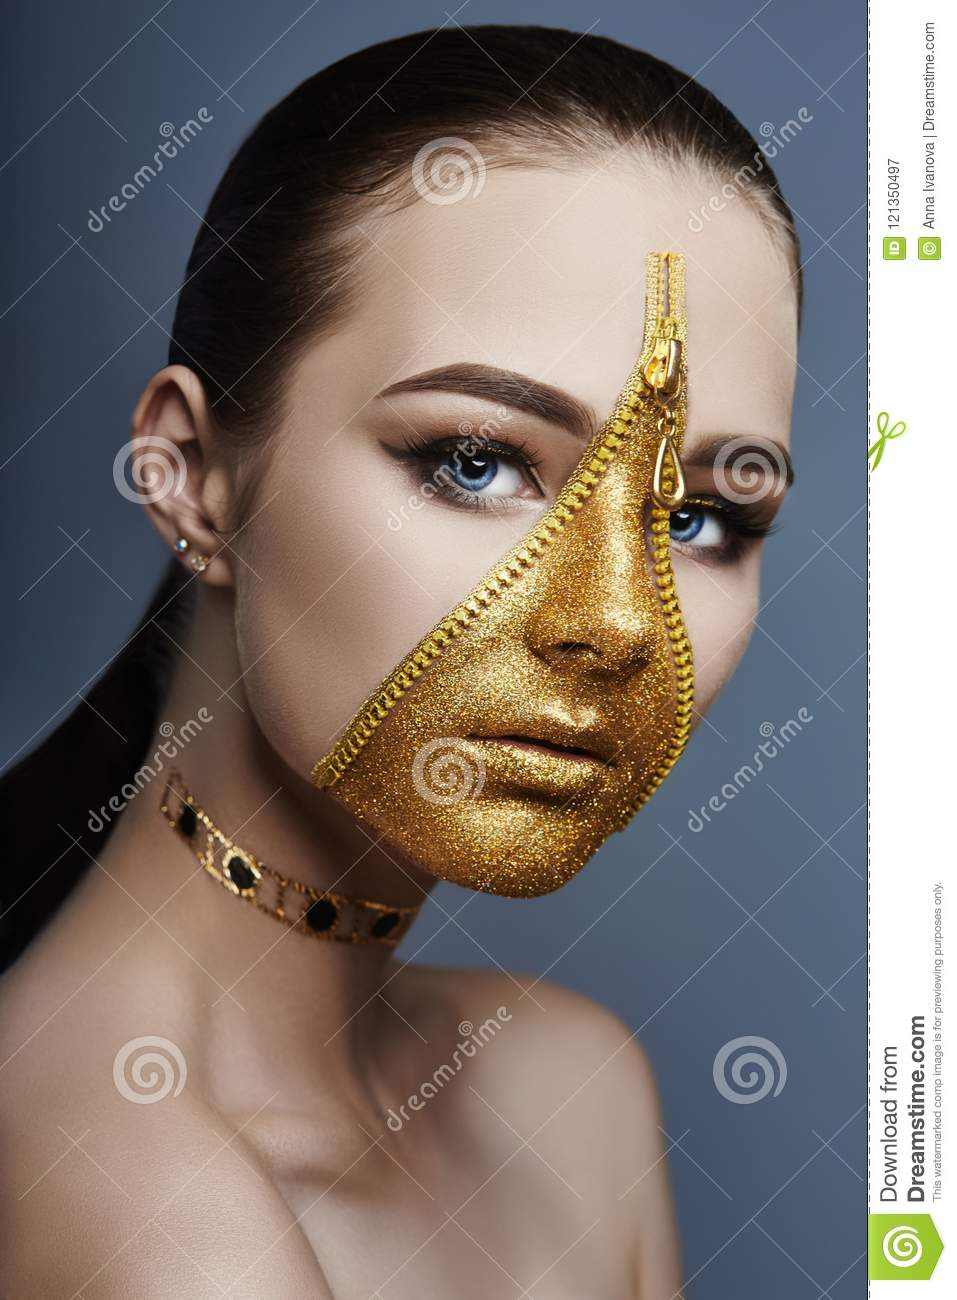 Creative grim makeup face of girl Golden color zipper clothing on skin. Fashion beauty creative cosmetics and skin care halloween